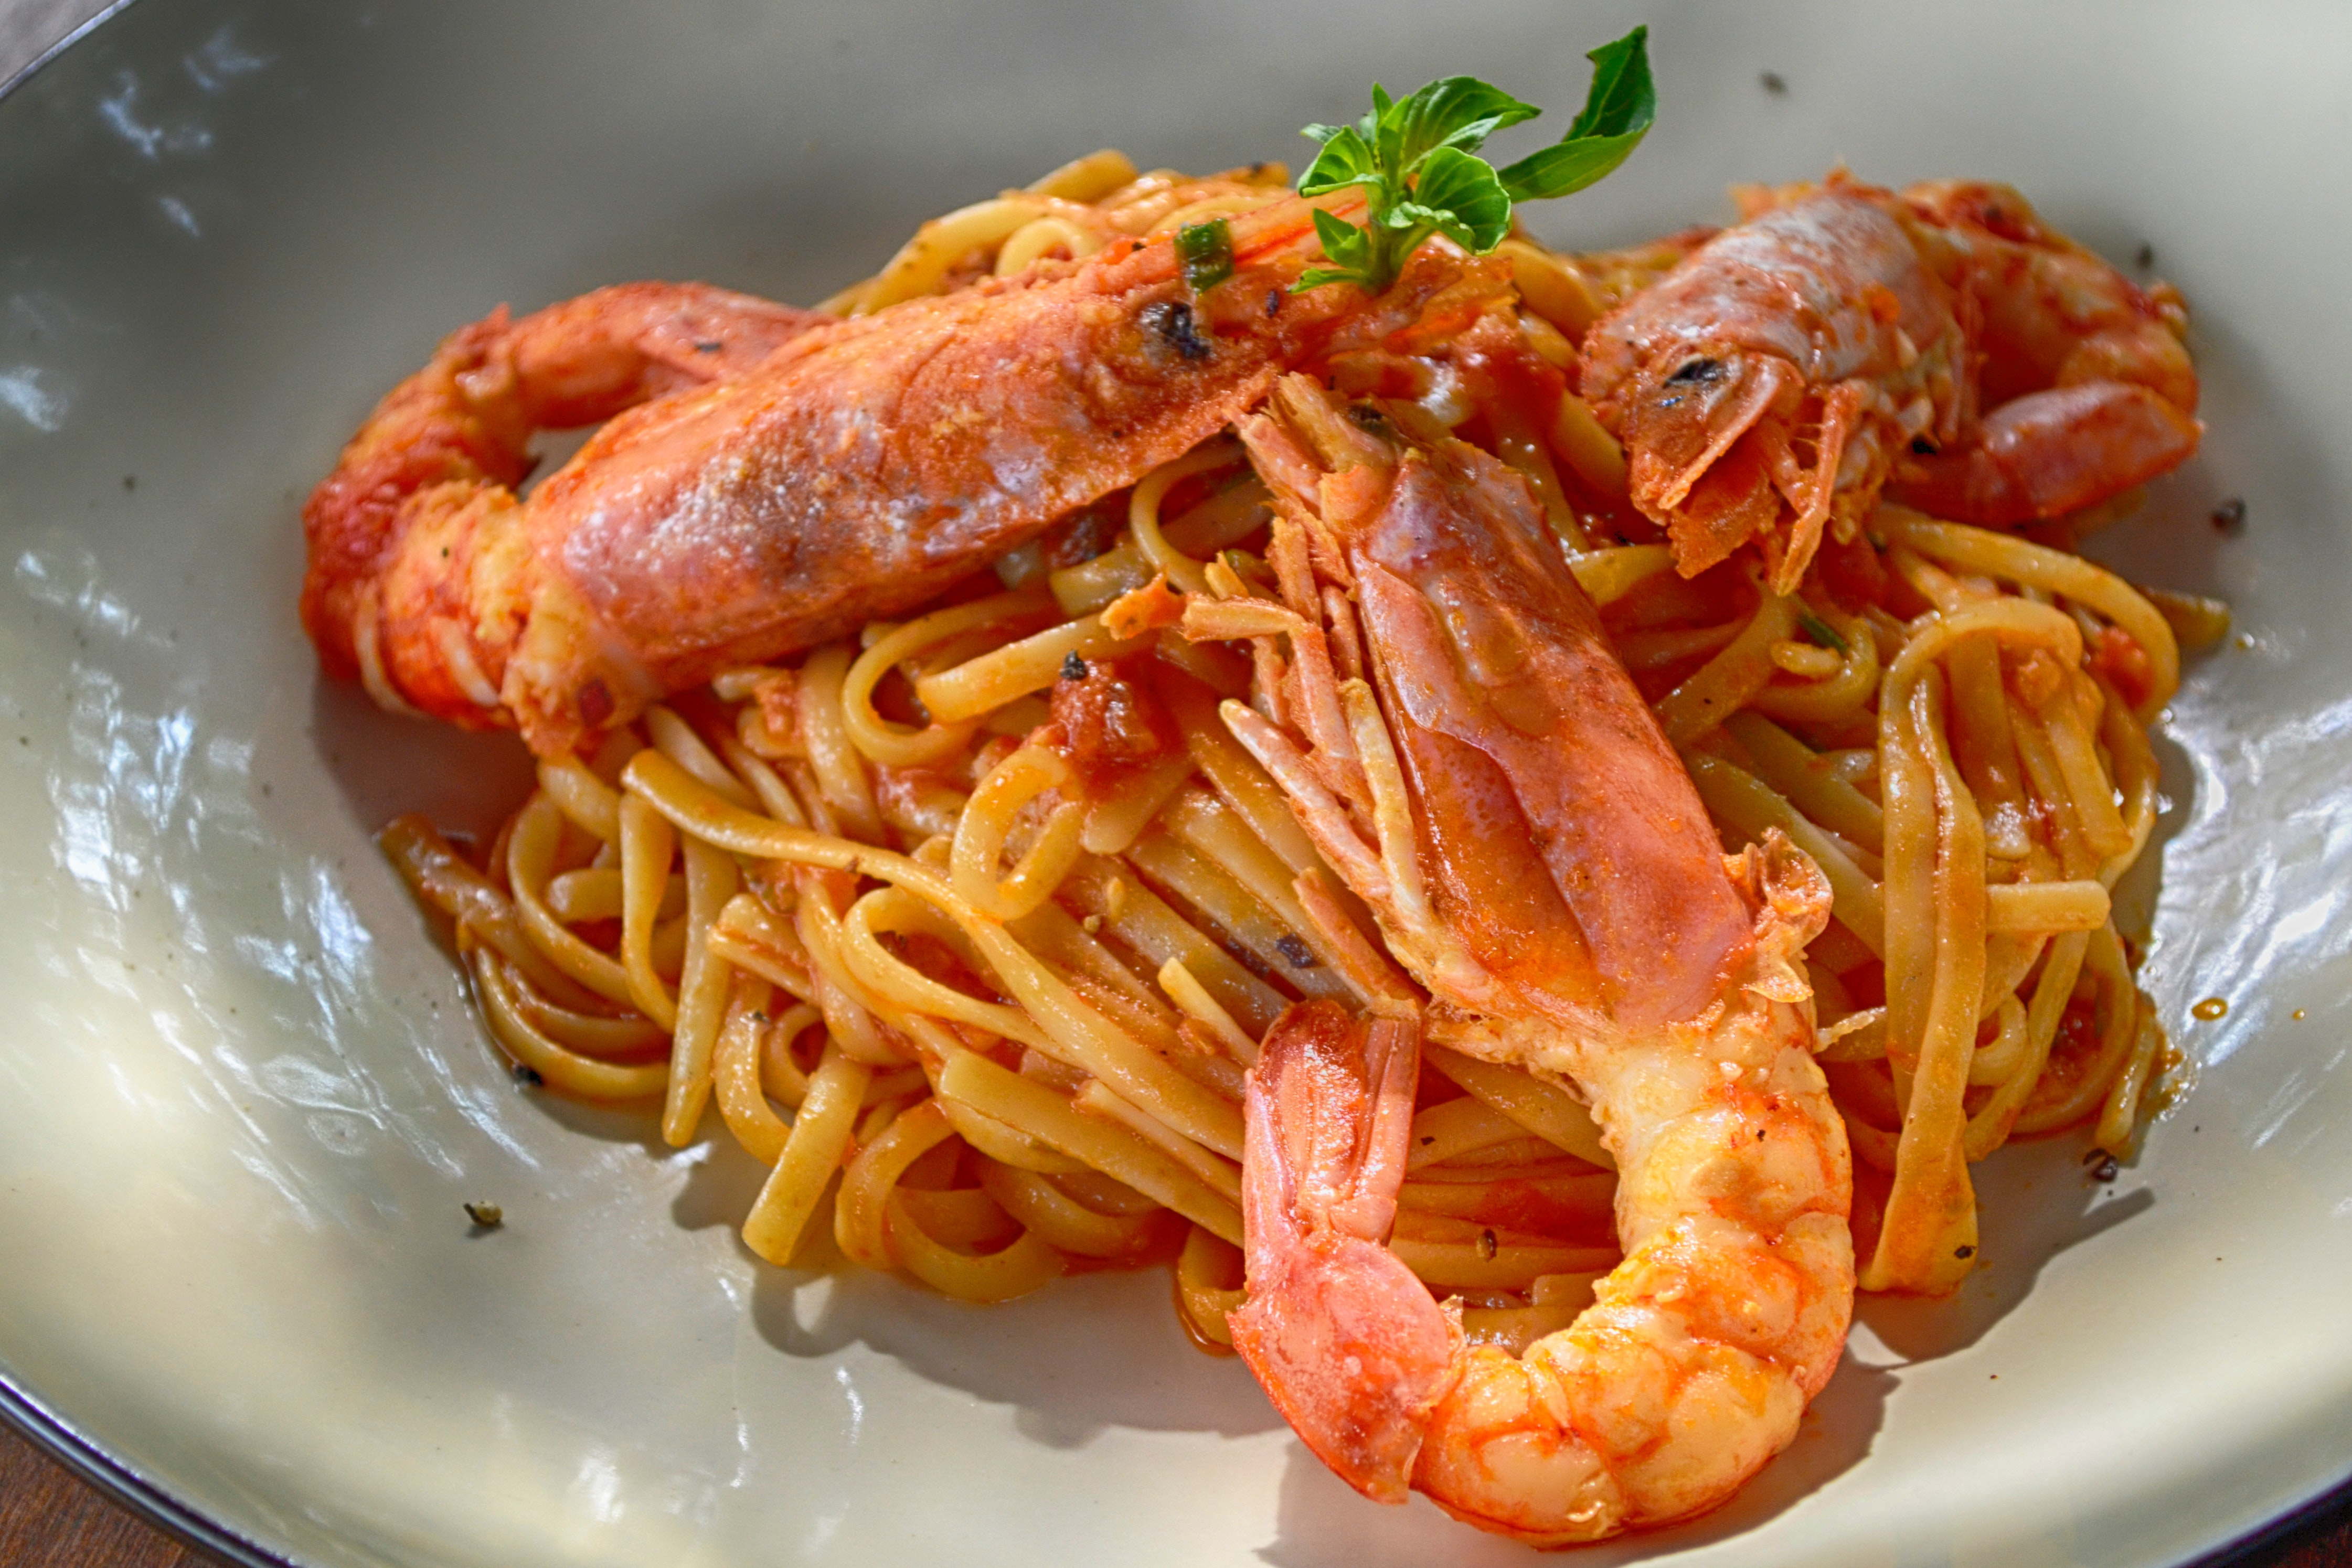 Cooked Shrimp With Noodles, Basil, Meal, Spaghetti, Shrimp, HQ Photo